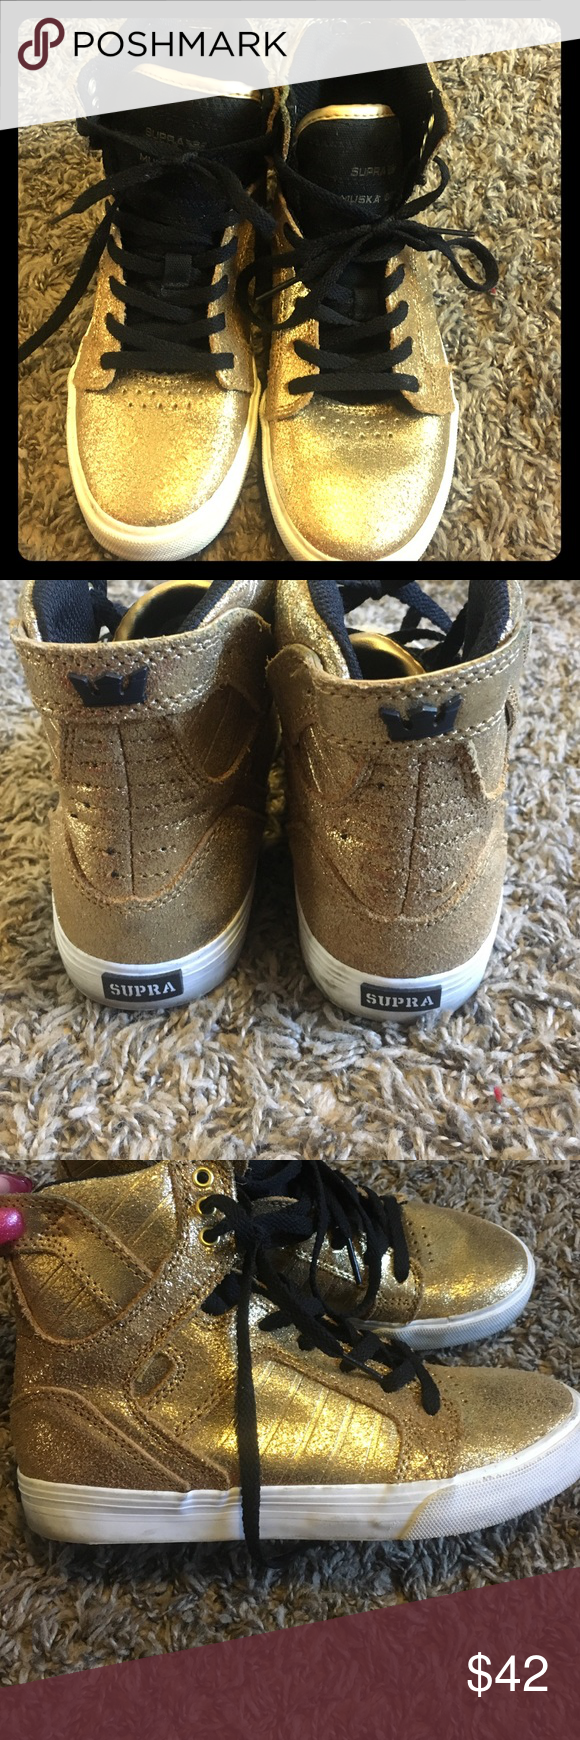 Gold shiny Supra Worn once gold Supra kids shoes.   Some scuffs but still in good condition Supra Shoes Sneakers